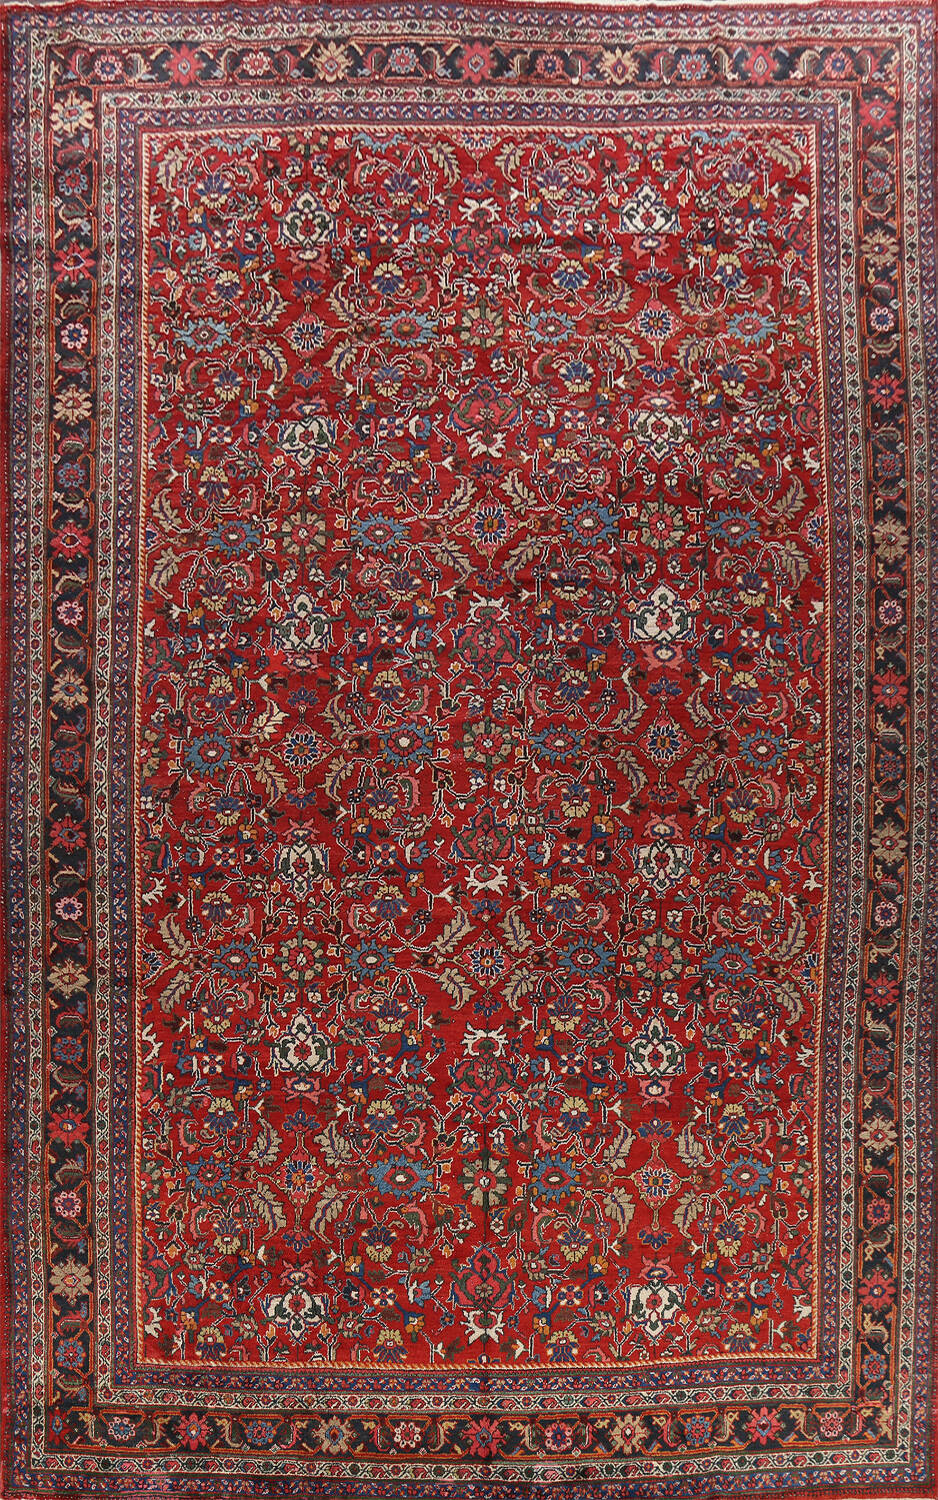 Antique 100% Vegetable Dye Sultanabad Persian Area Rug 12x17 image 1